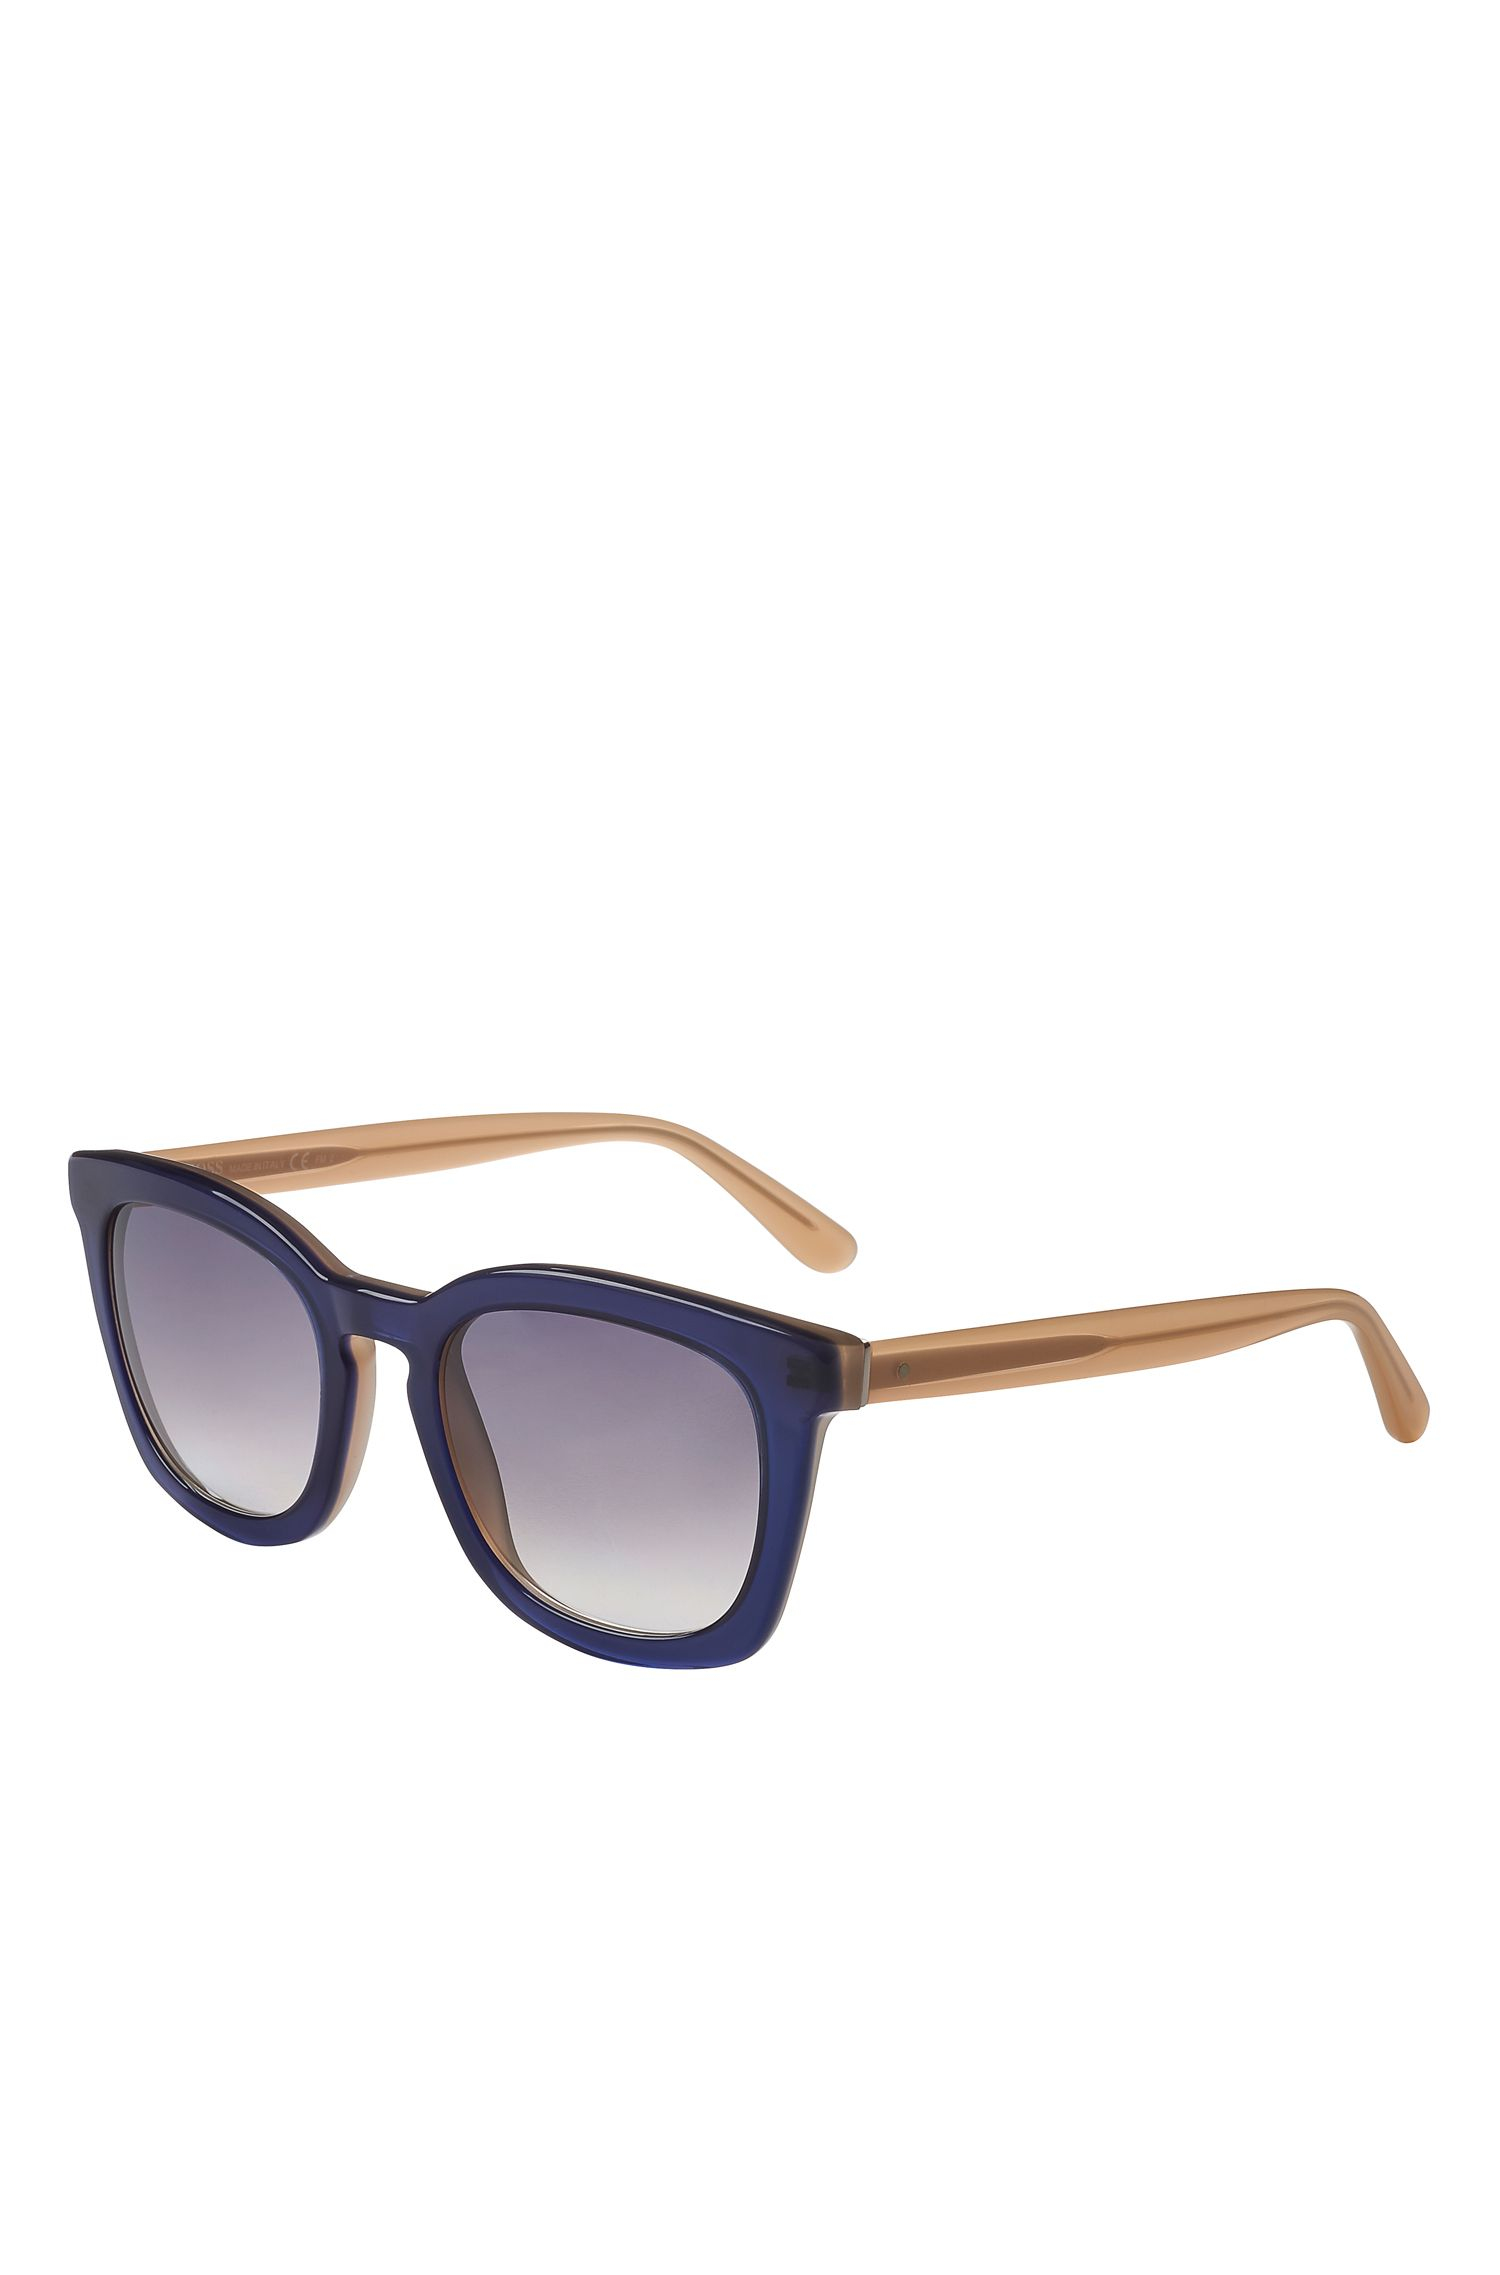 Gradient Blue Lens Rectangular Sunglasses | BOSS 0743S, Assorted-Pre-Pack